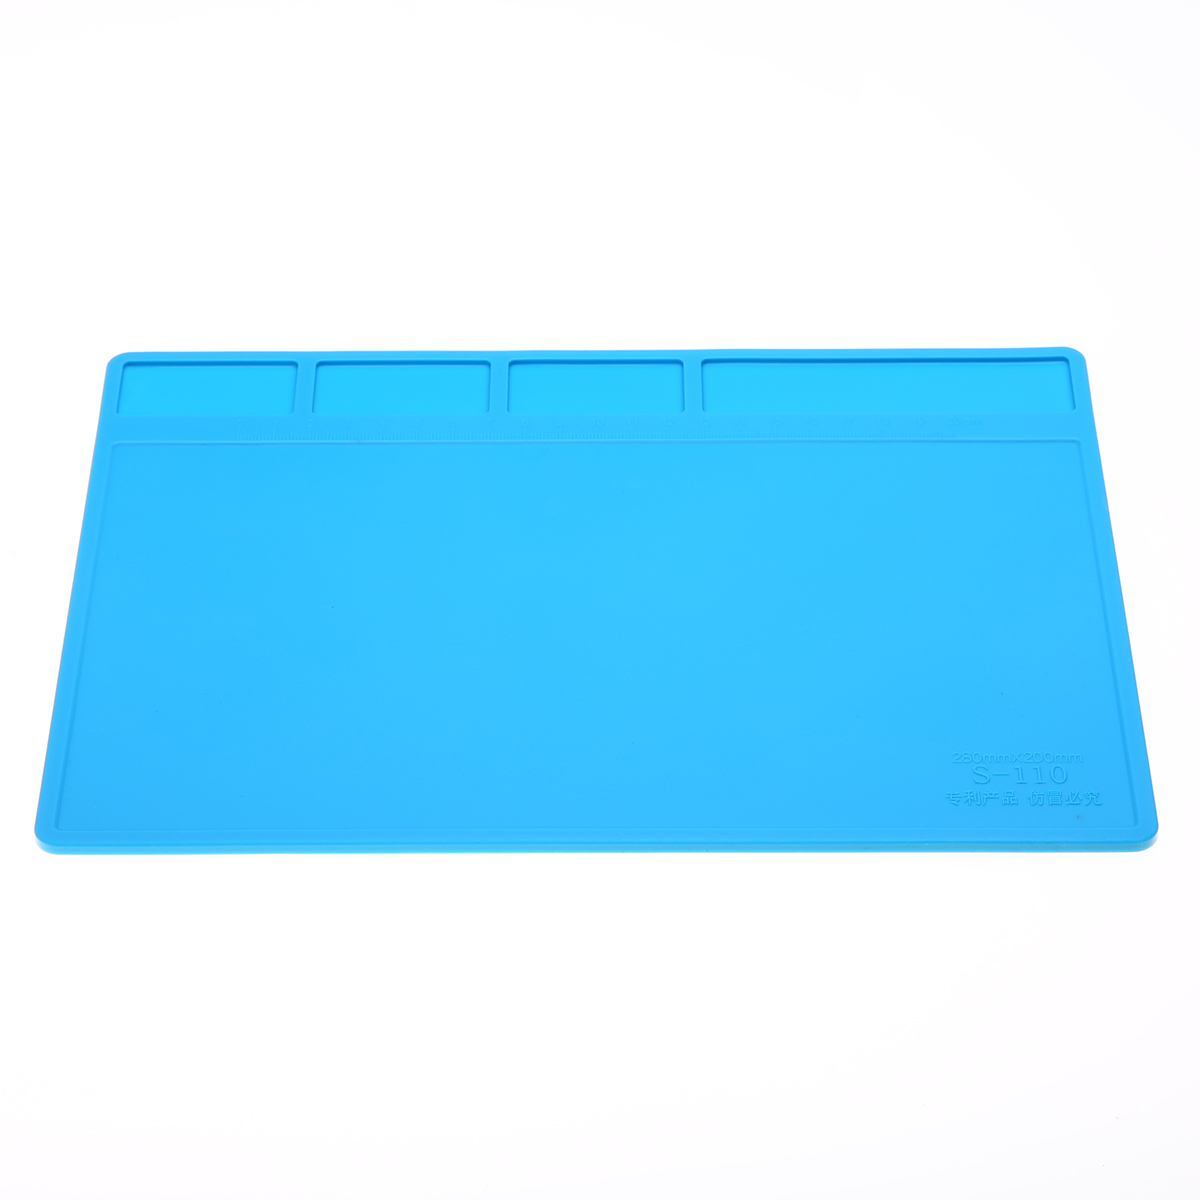 1pc Silicone Soldering Pad Heat resistant Hot Gun BGA Solder Mat Repair Maintenance Platform Repair Tool